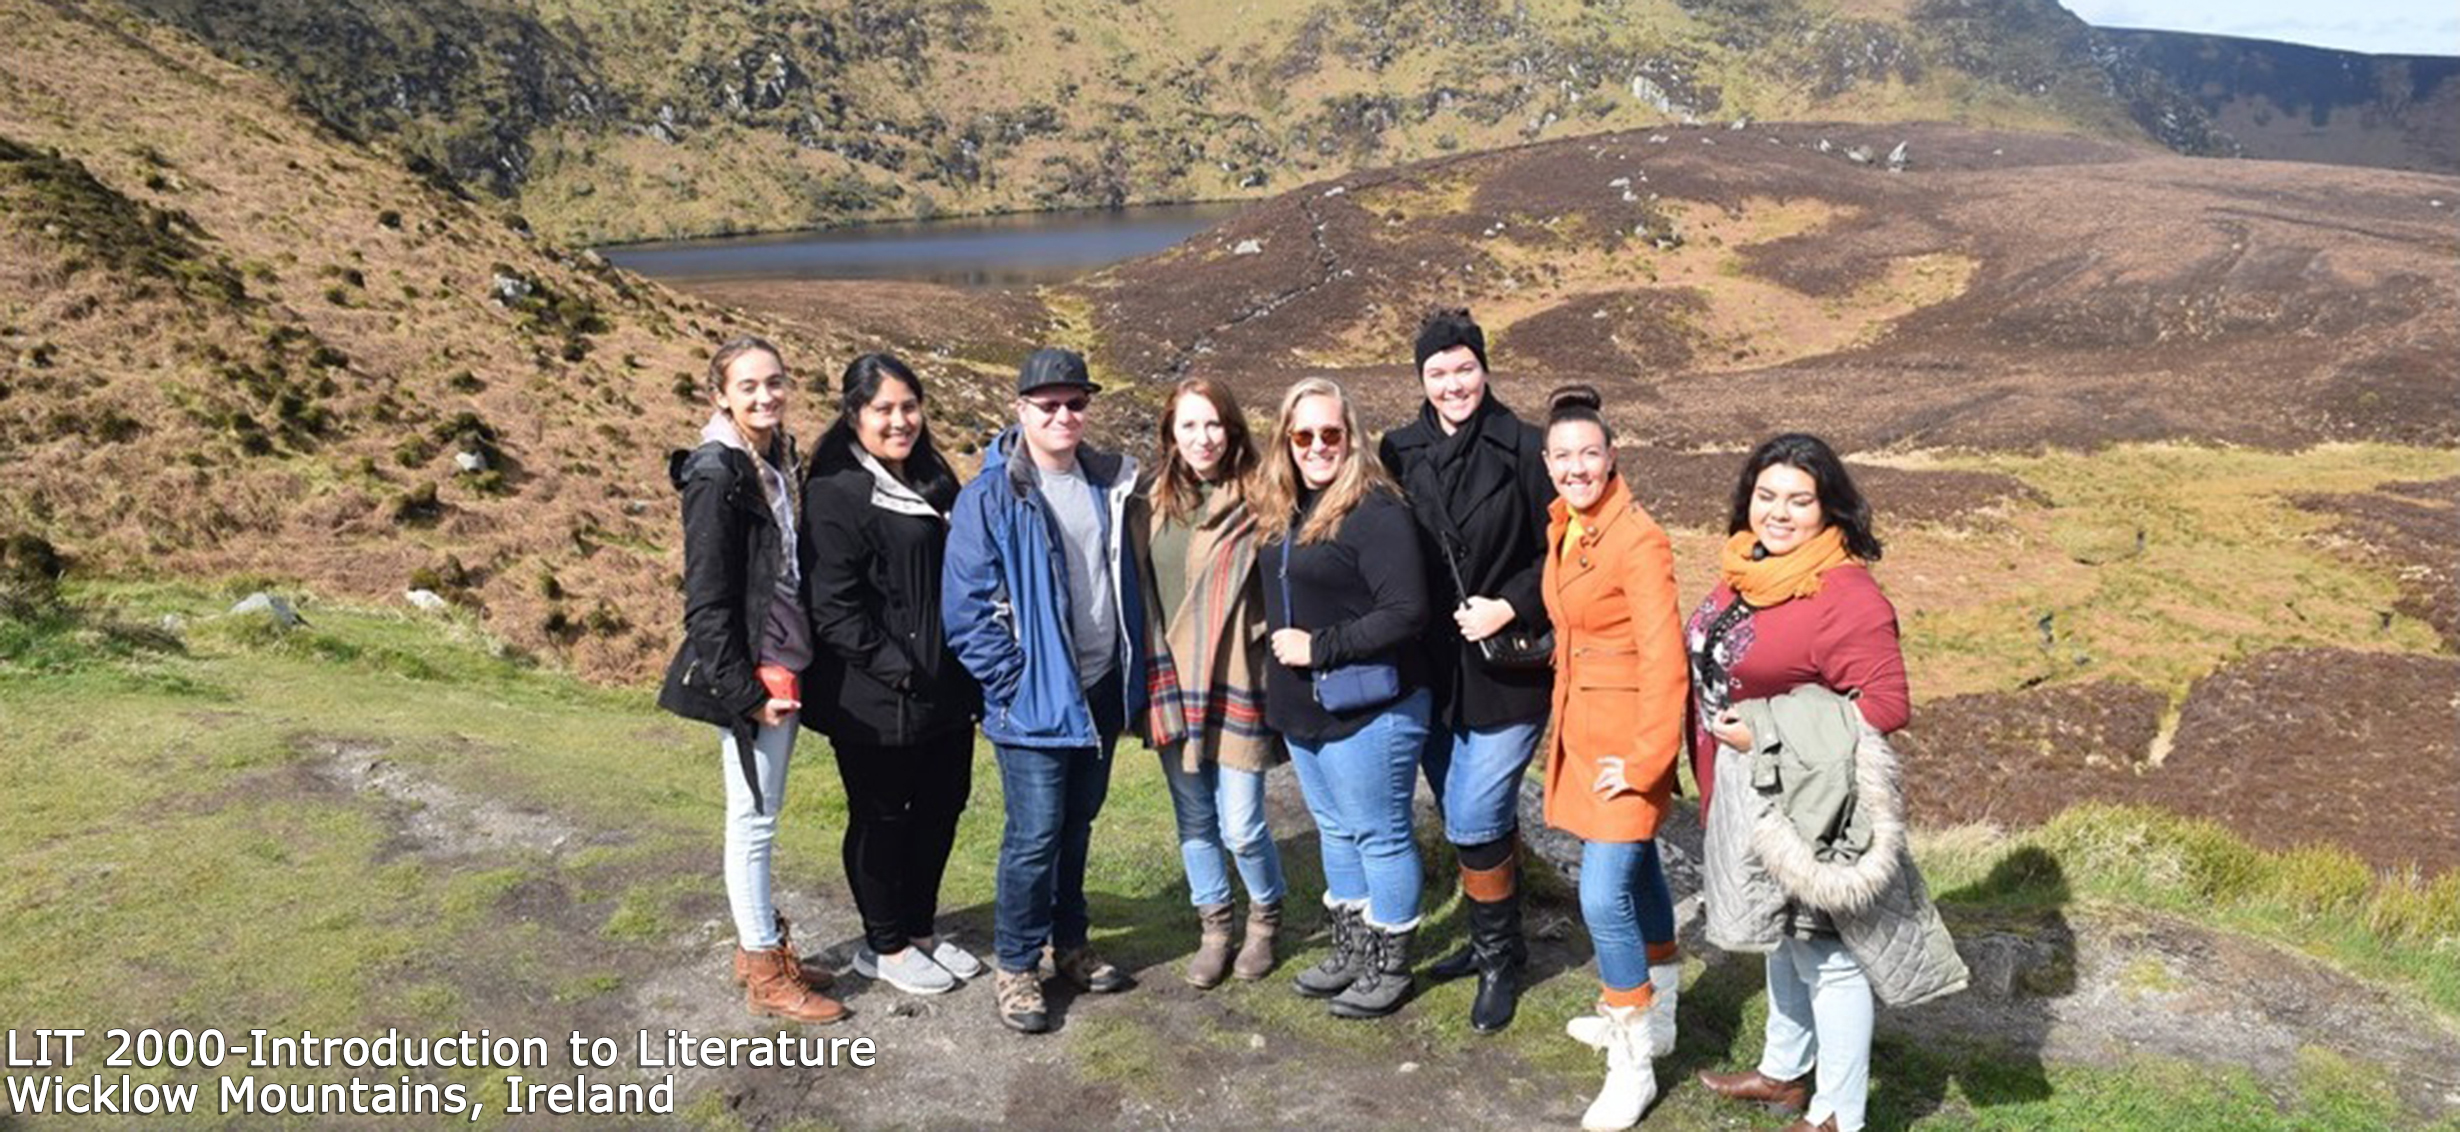 LIT 2000 - Introduction to Literature class at Wicklow Mountains, Ireland